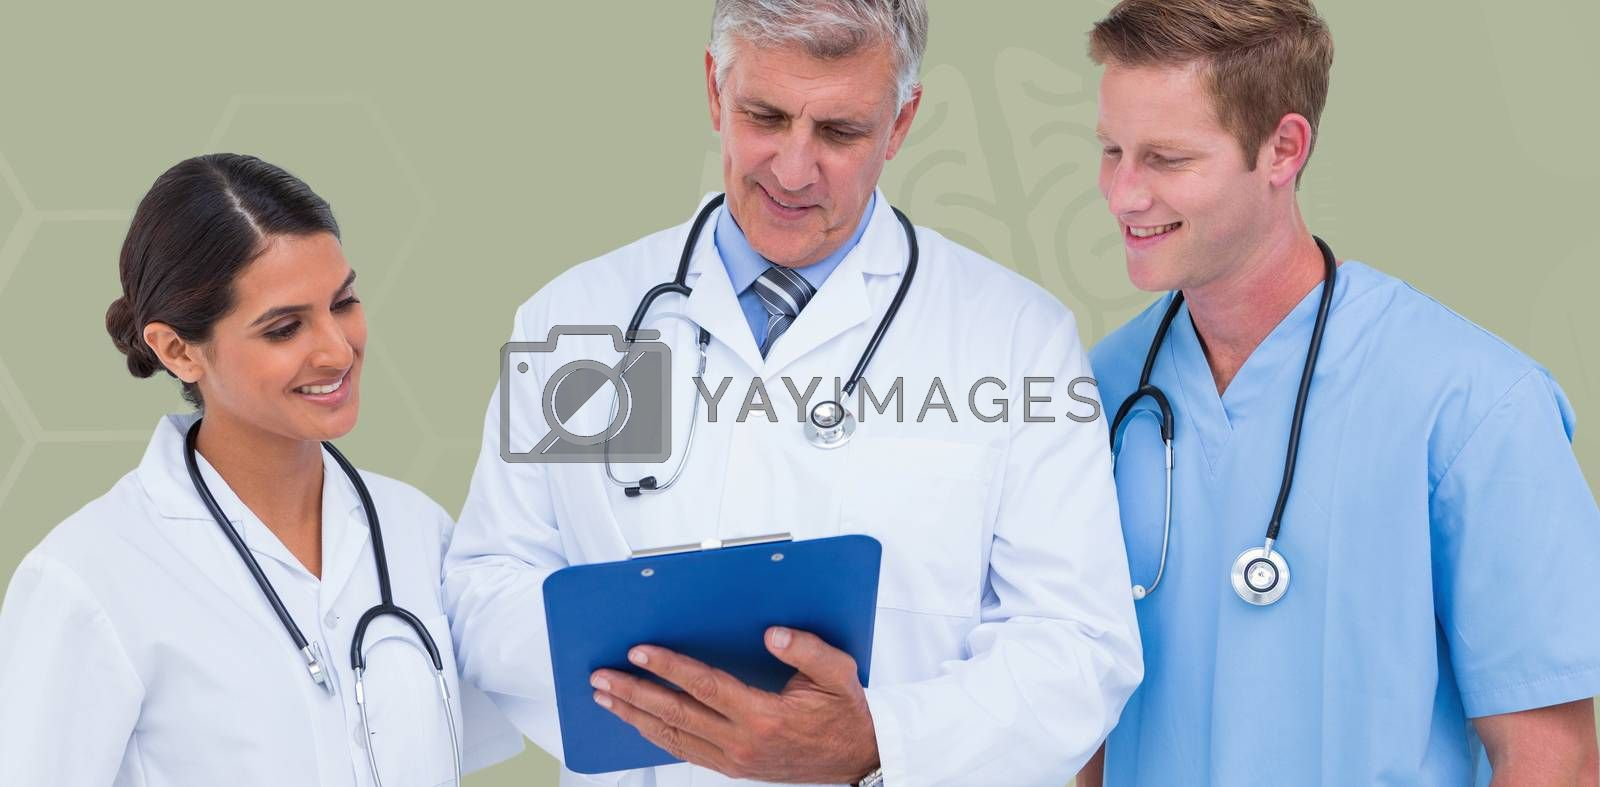 Doctor working with colleagues while holding writing pad  against blue